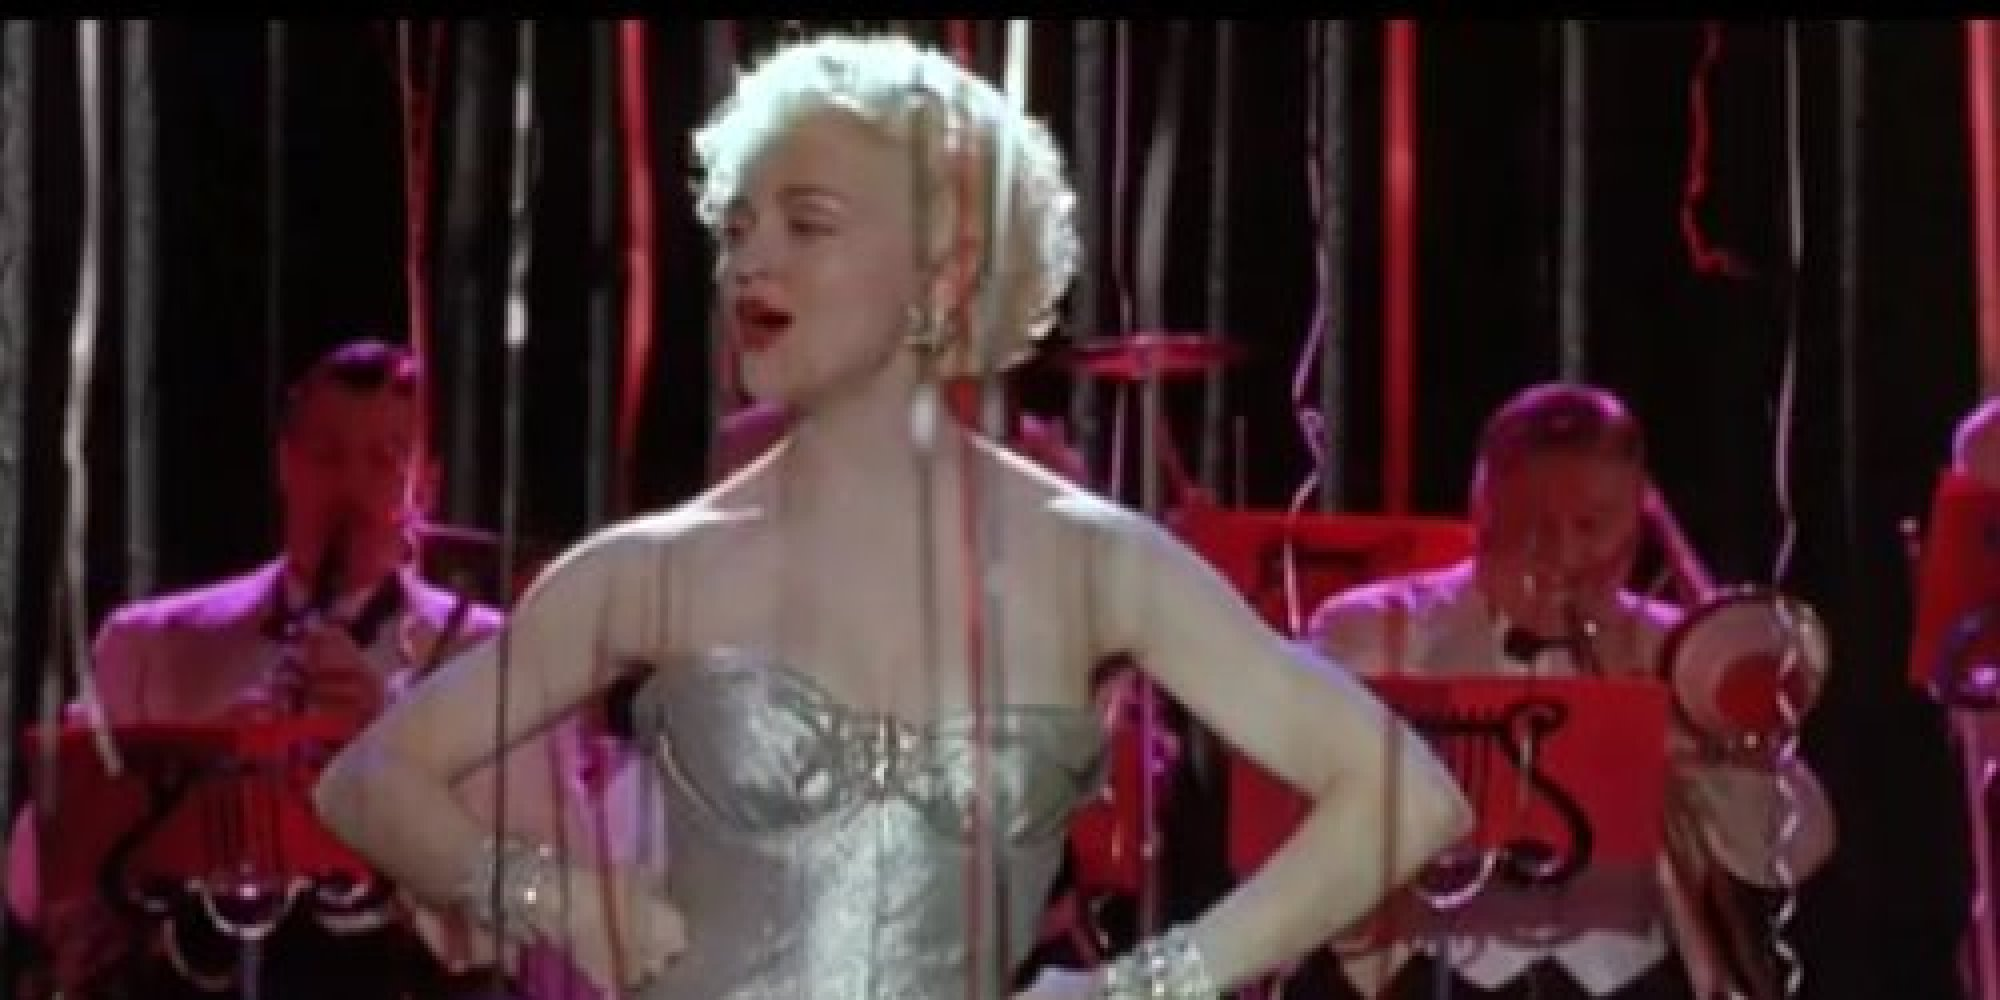 new years eve supercut helps ring in 2014 with all our